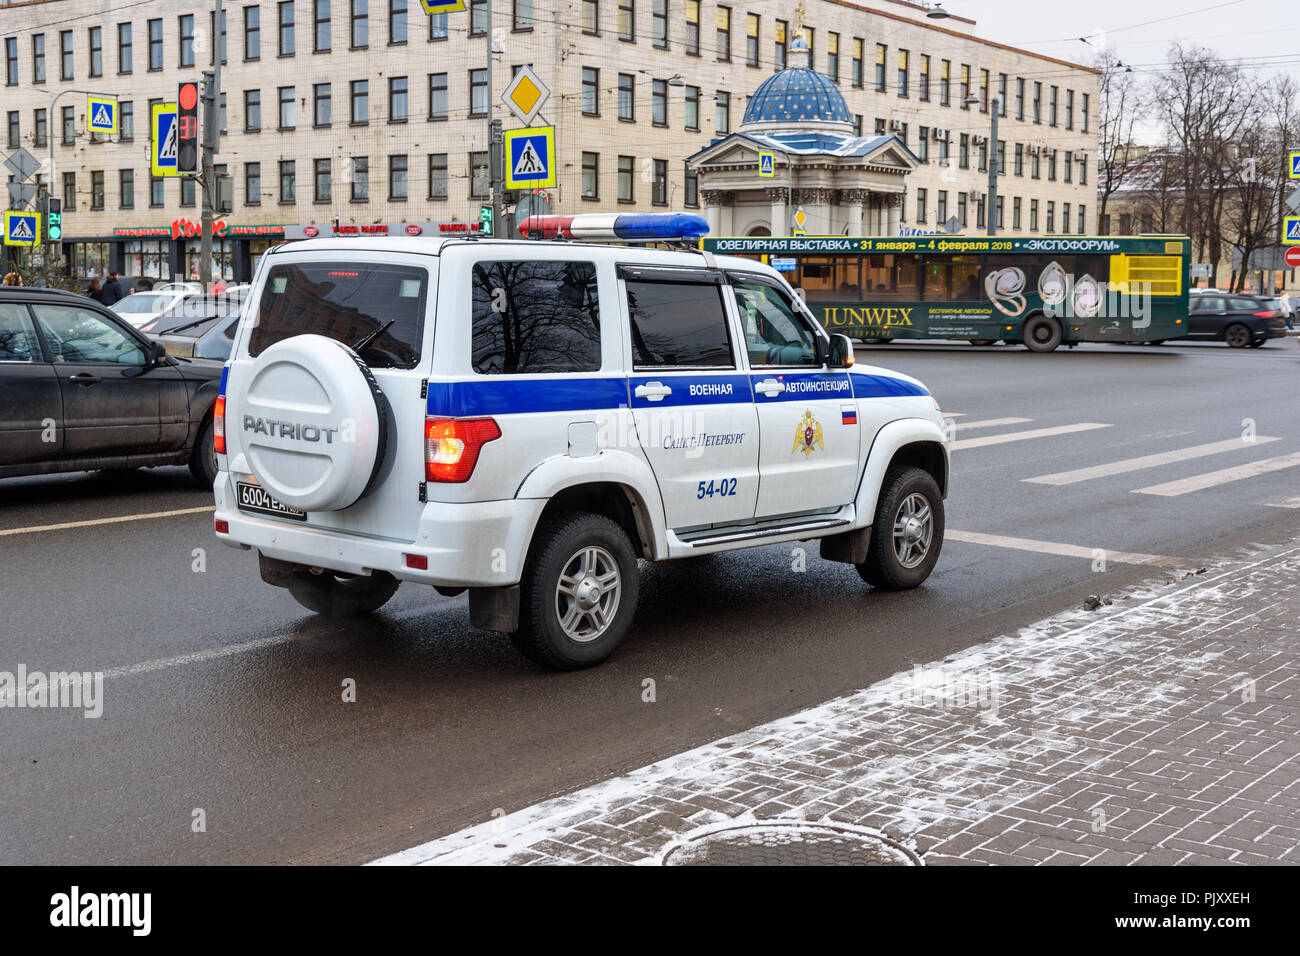 Saint Petersburg, Russia - January 11, 2018: Military traffic police car on the street in the city - Stock Image